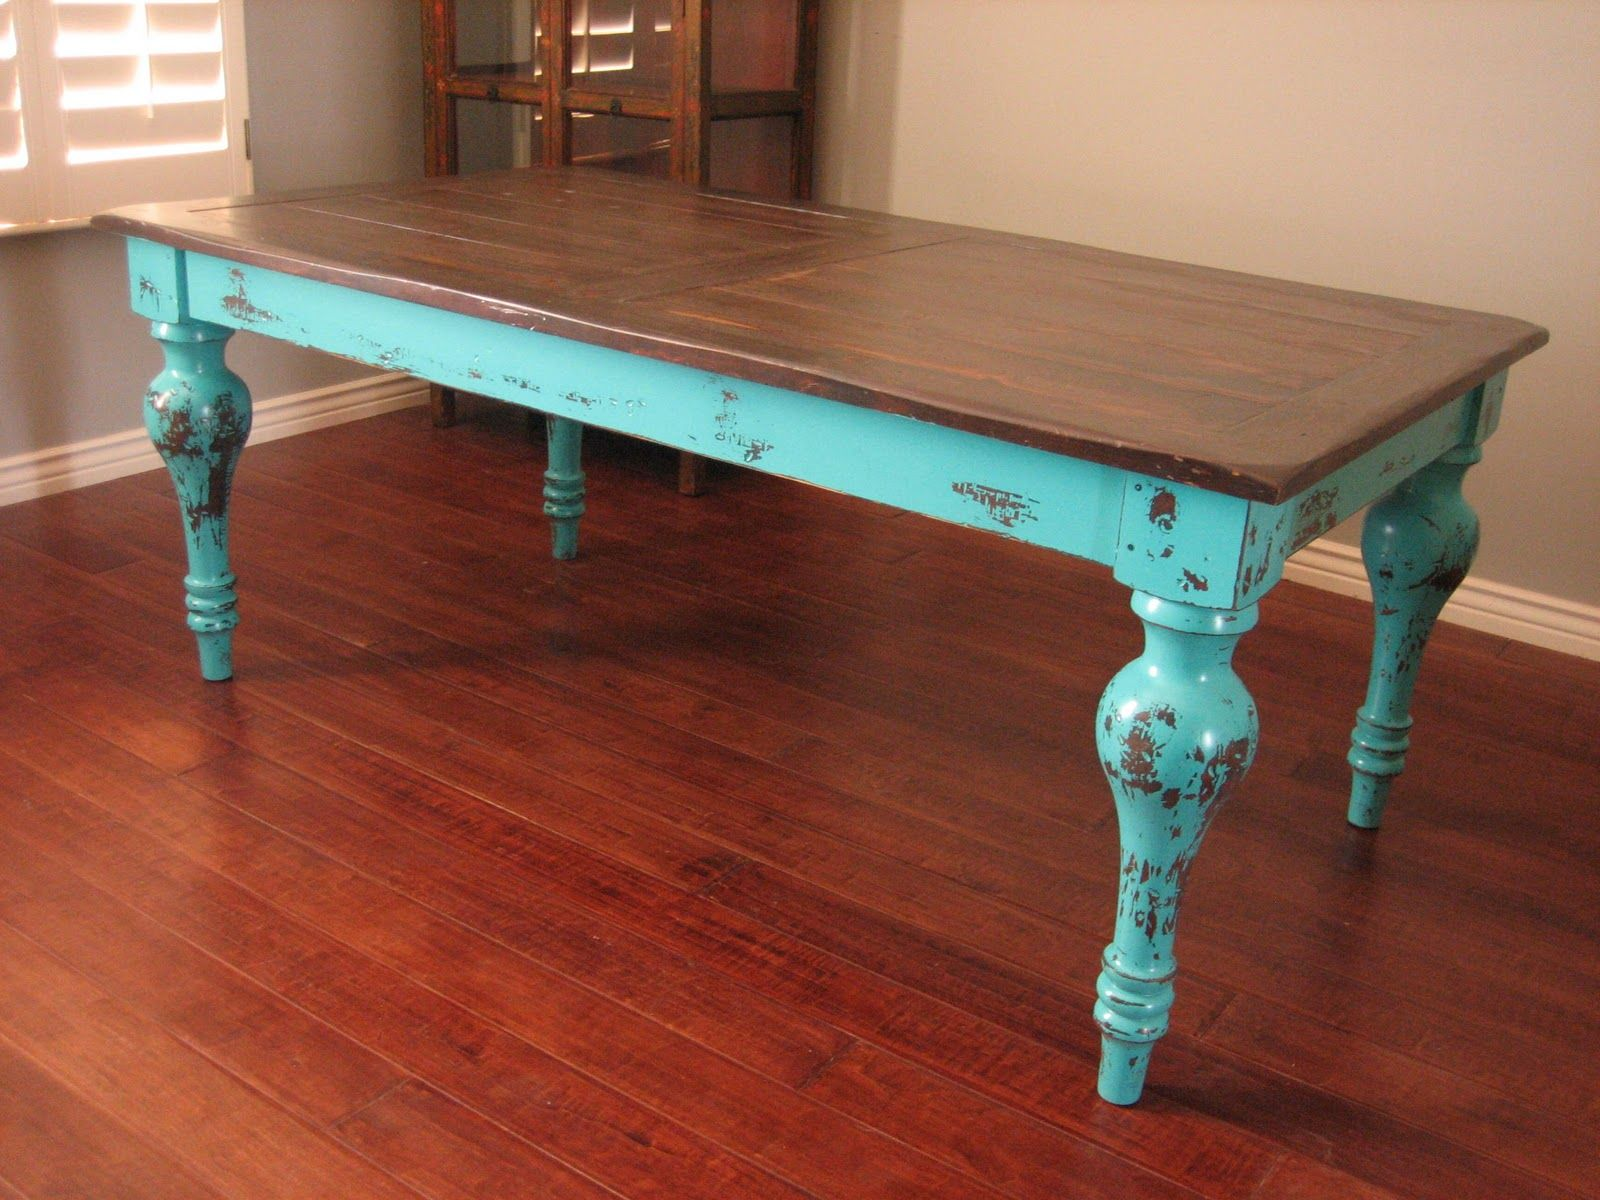 Rustic Beach Coffee Table Really Liking The Teal Distressed Look It Looks As If